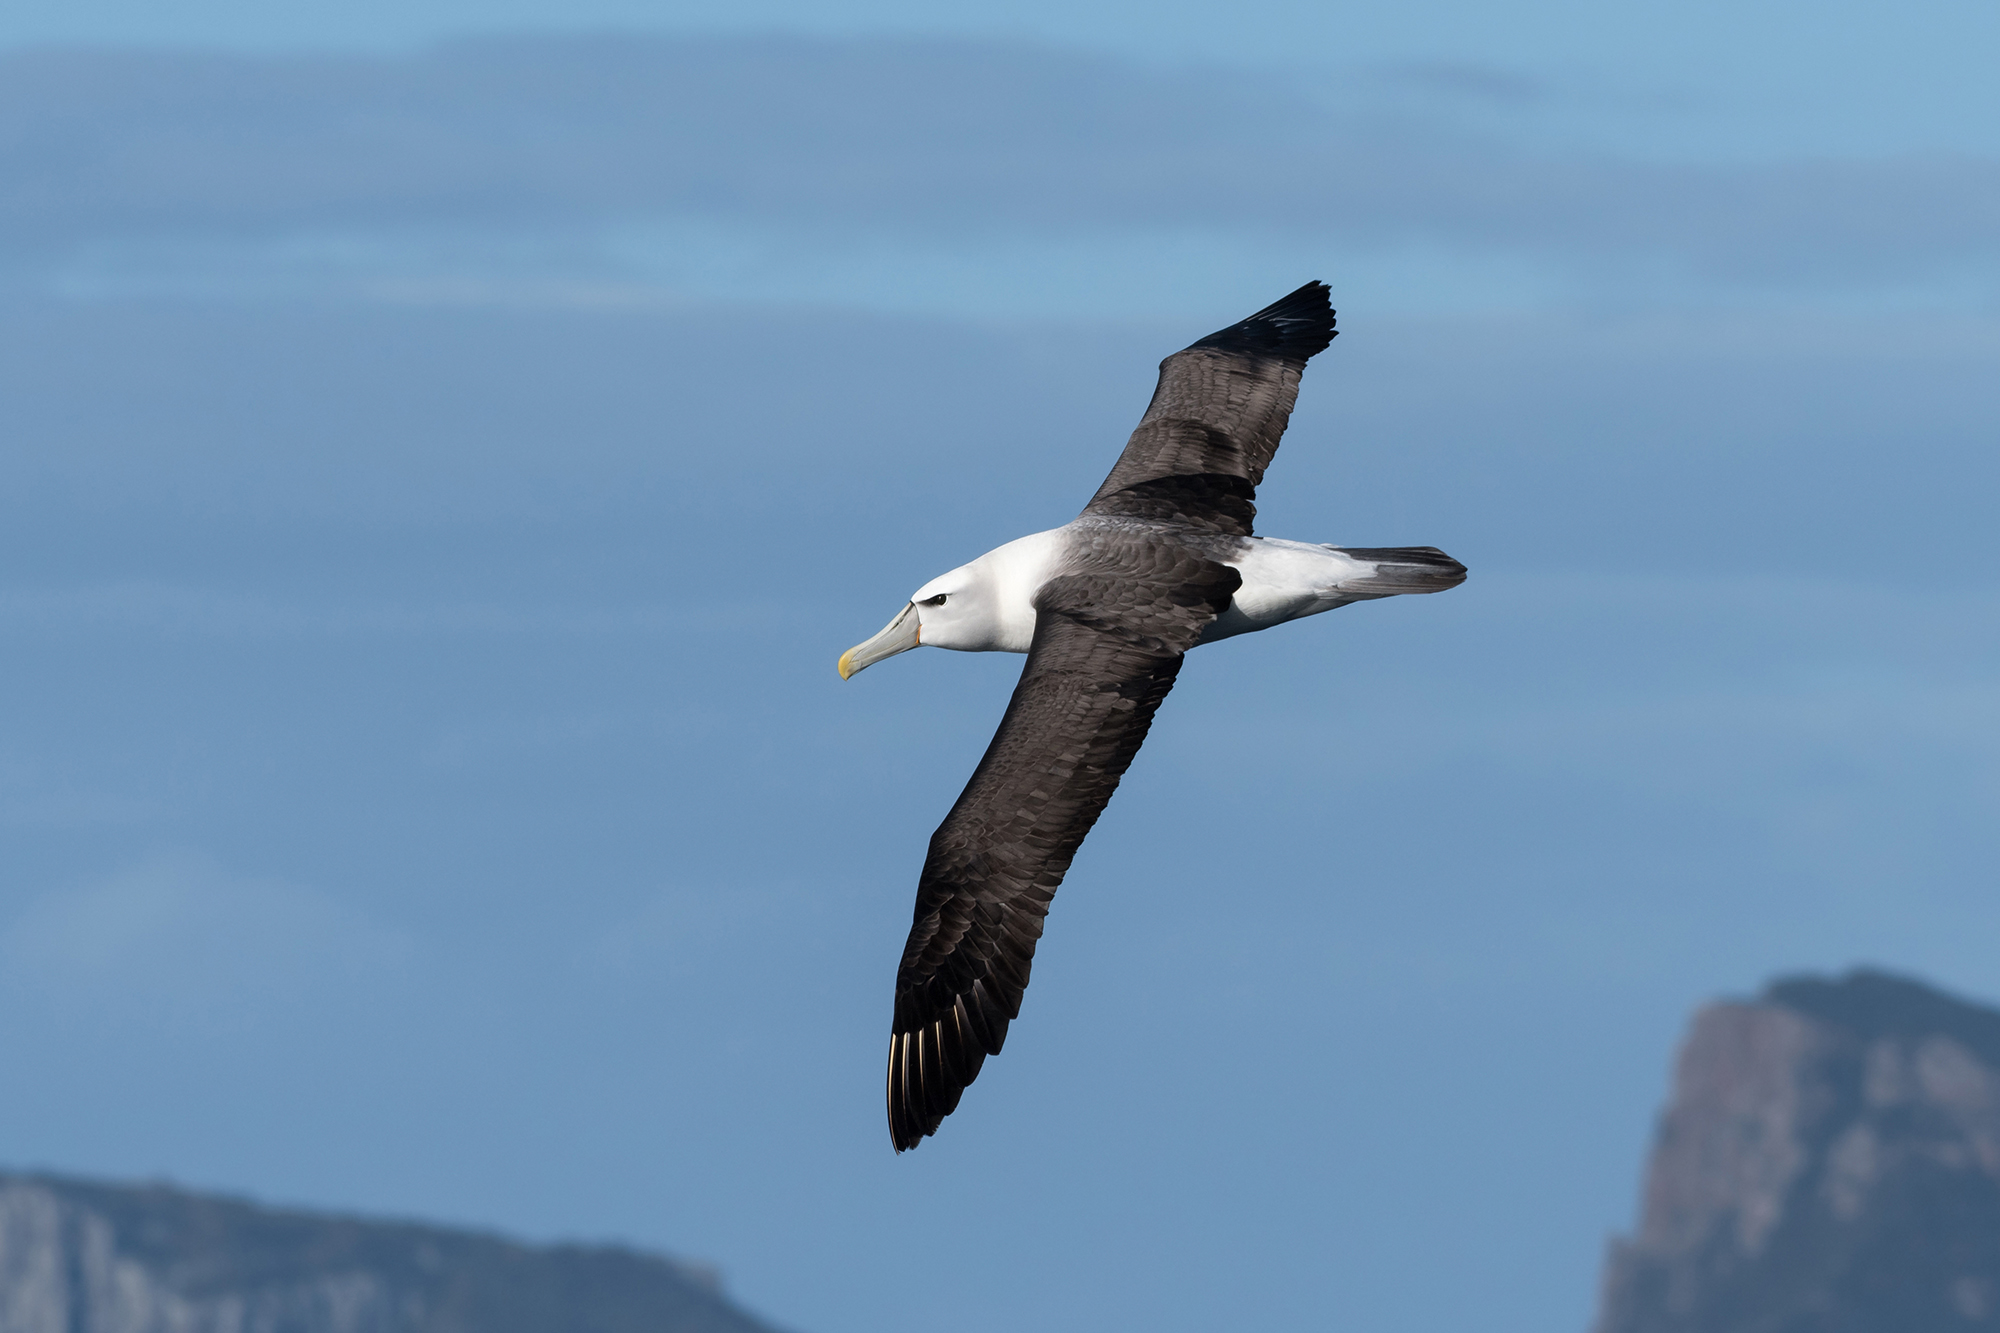 A Shy Albatross (a large seabird) flying over Tasmanian coastal waters. In the distance are coastline cliffs.